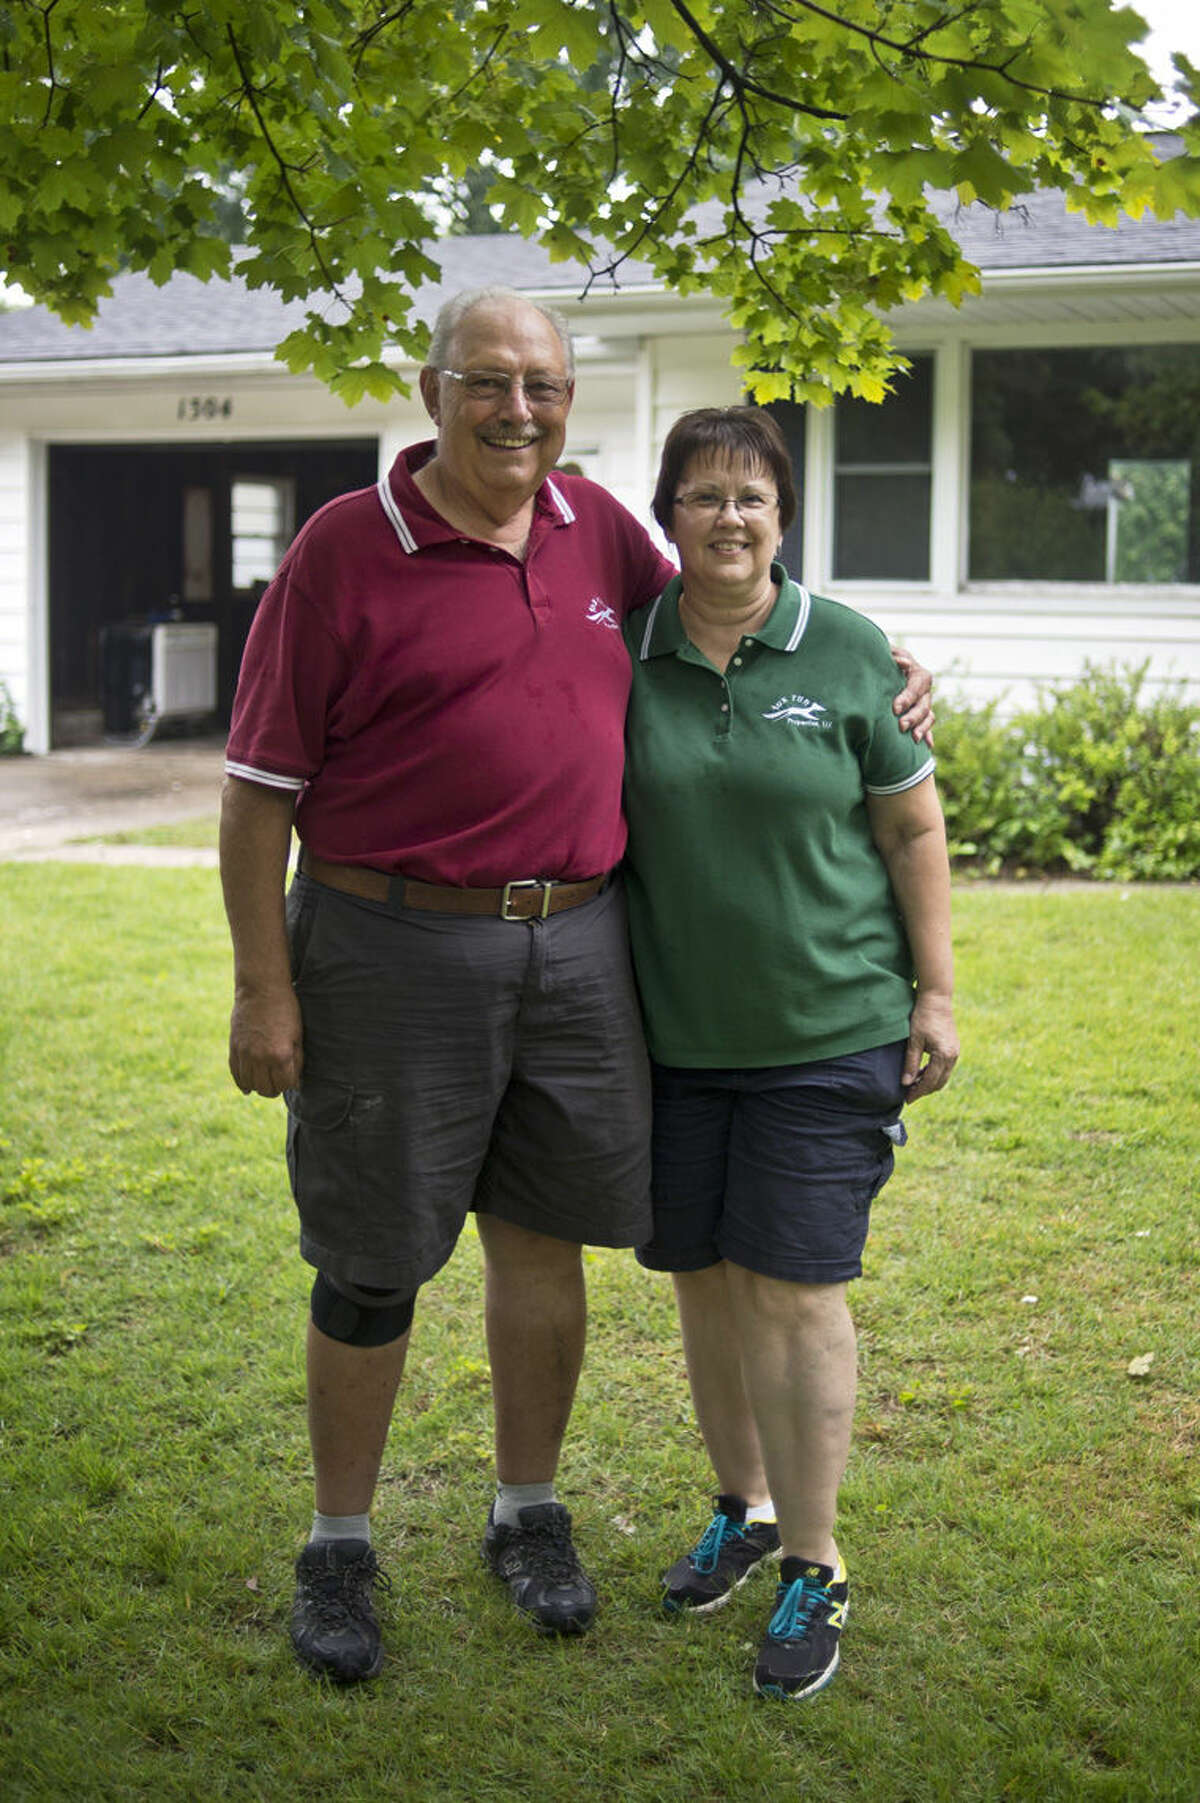 Sanford residents Colette and Philip Urian of Fox Run Properties pose for a portrait outside of a house that they're flipping in Midland. The couple has been flipping houses for 12 years with this property being their 59th.